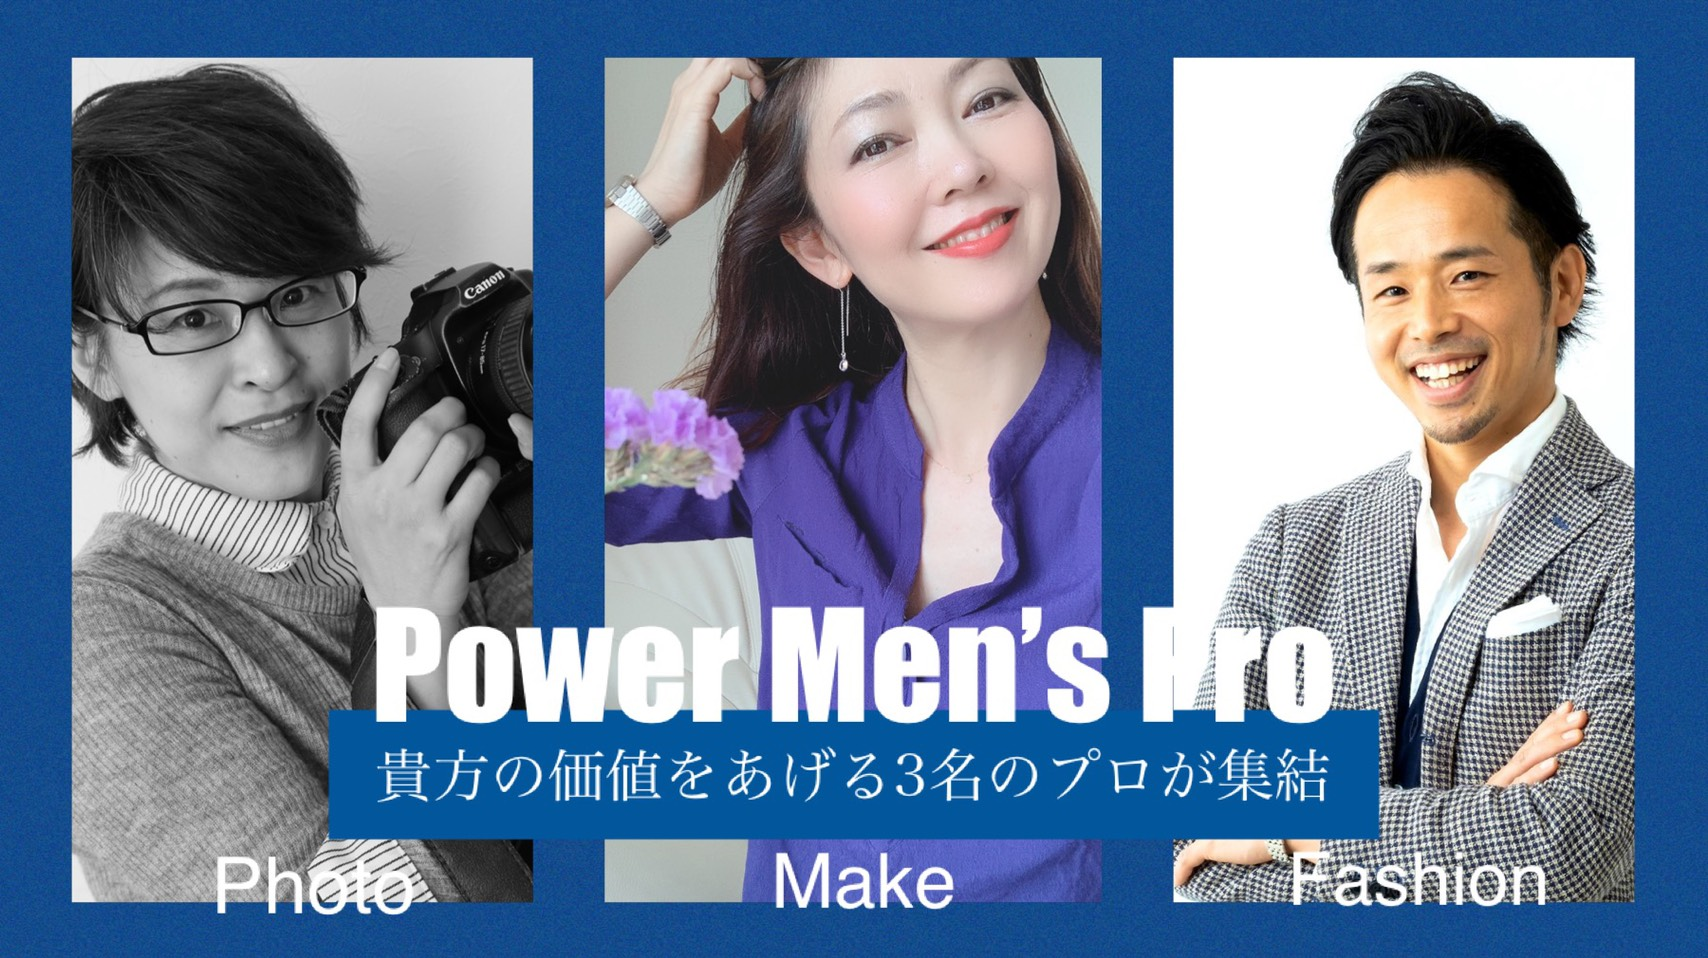 Power Men's Pro.